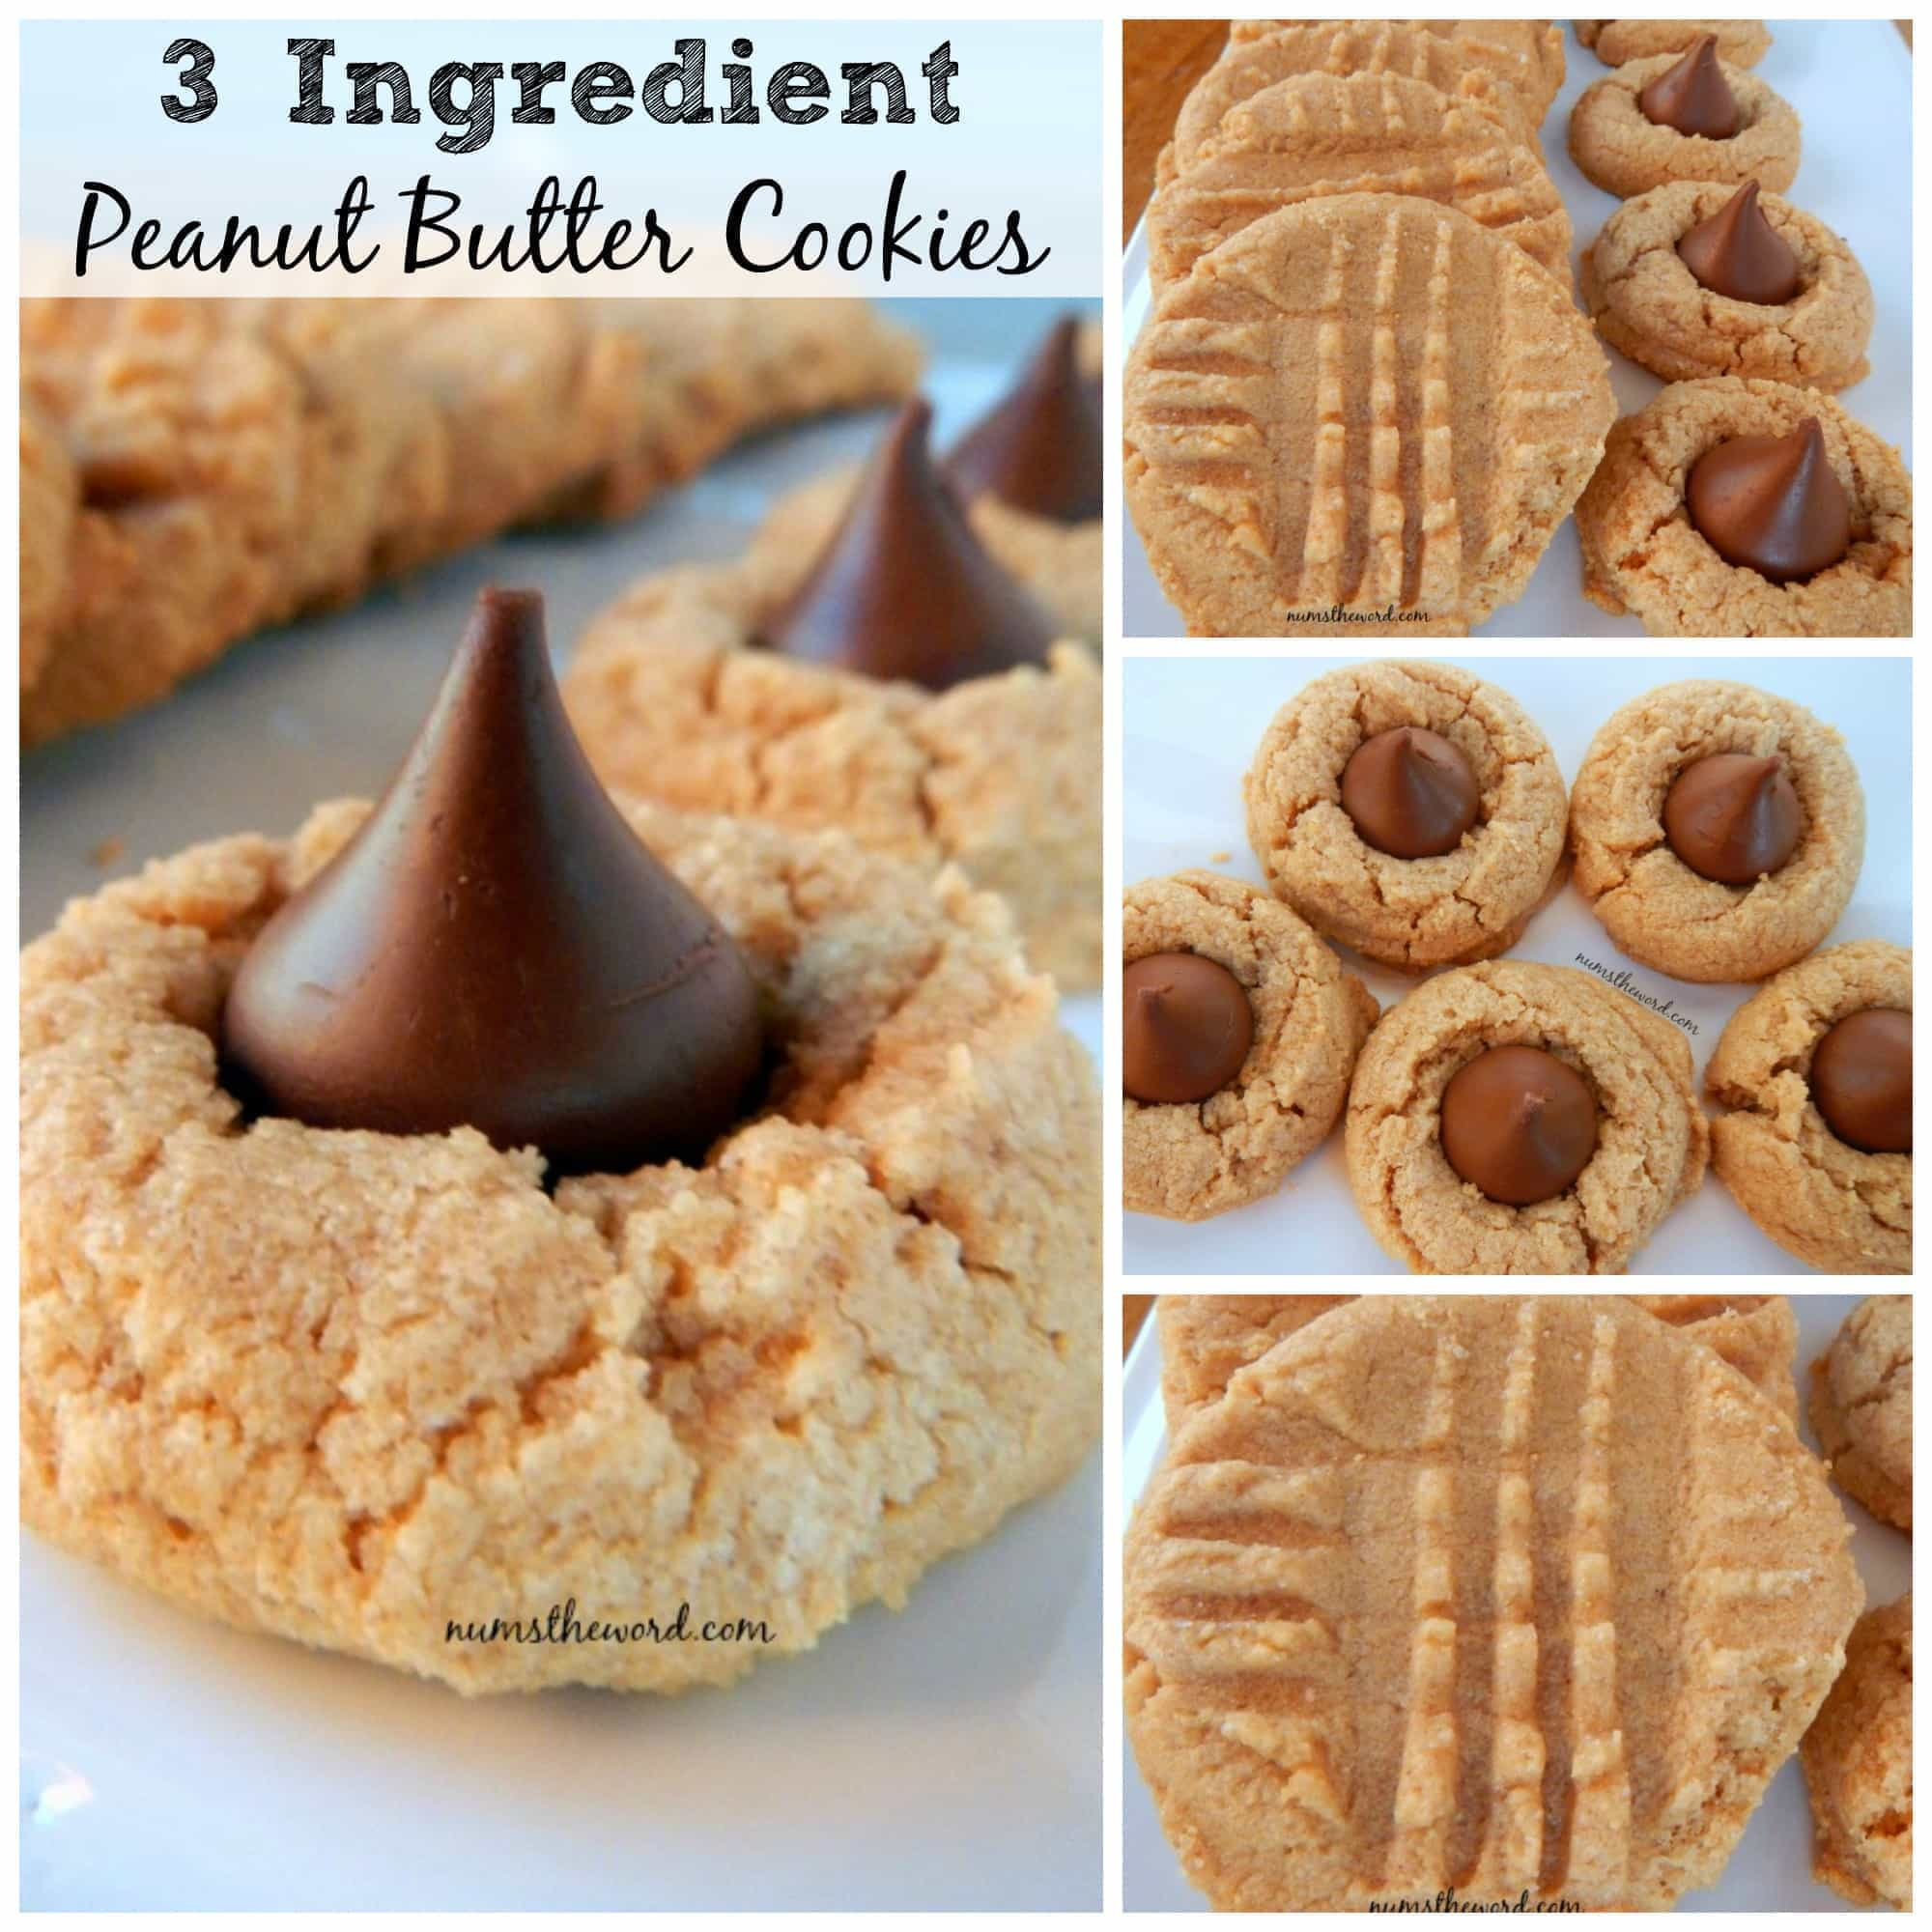 3 Ingredient Peanut Butter Cookies - collage of images for Facebook